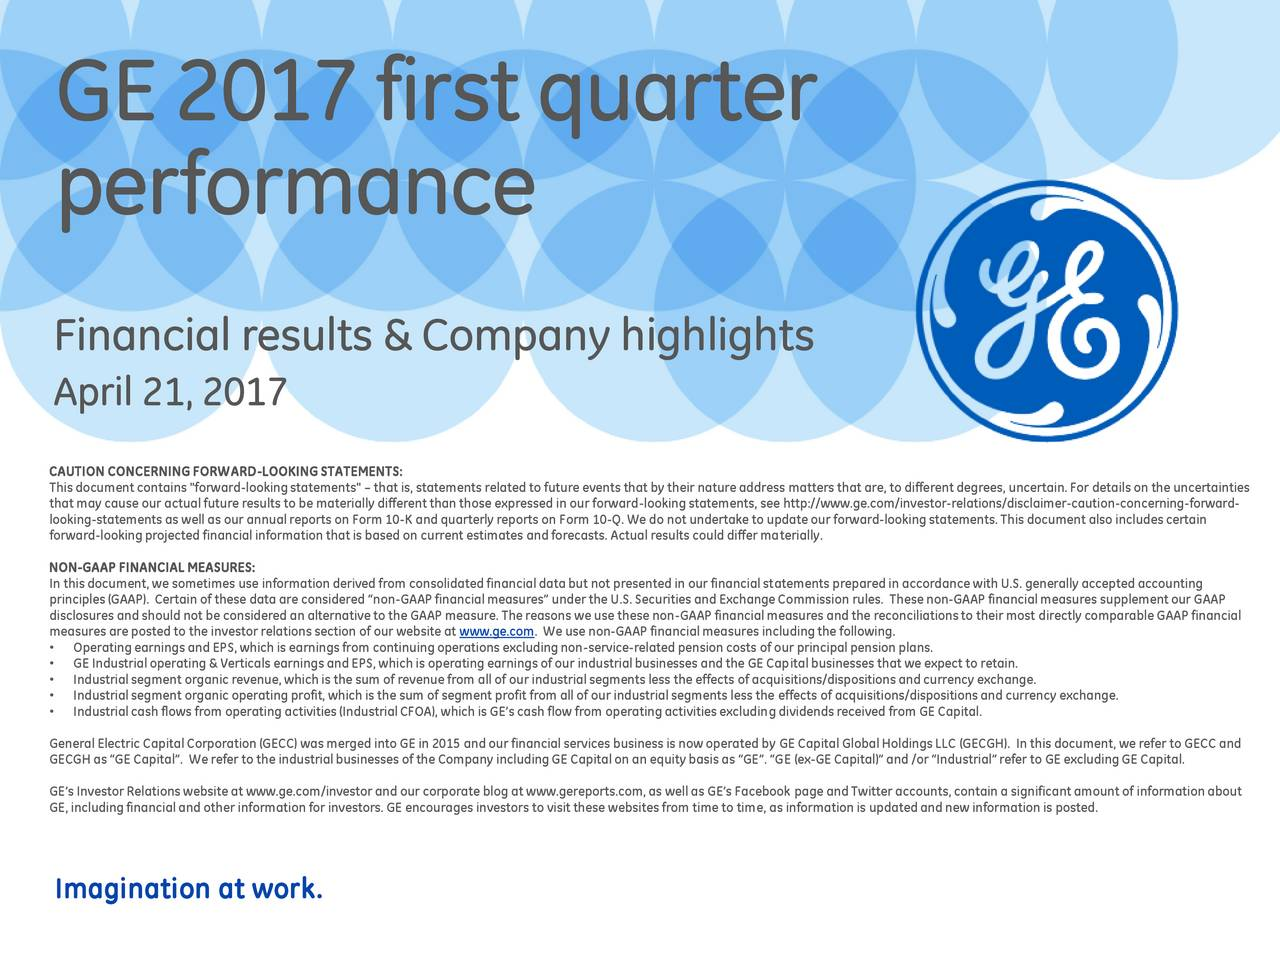 performance financial results u0026 company highlights april 21 caution concerning statements - General Electric